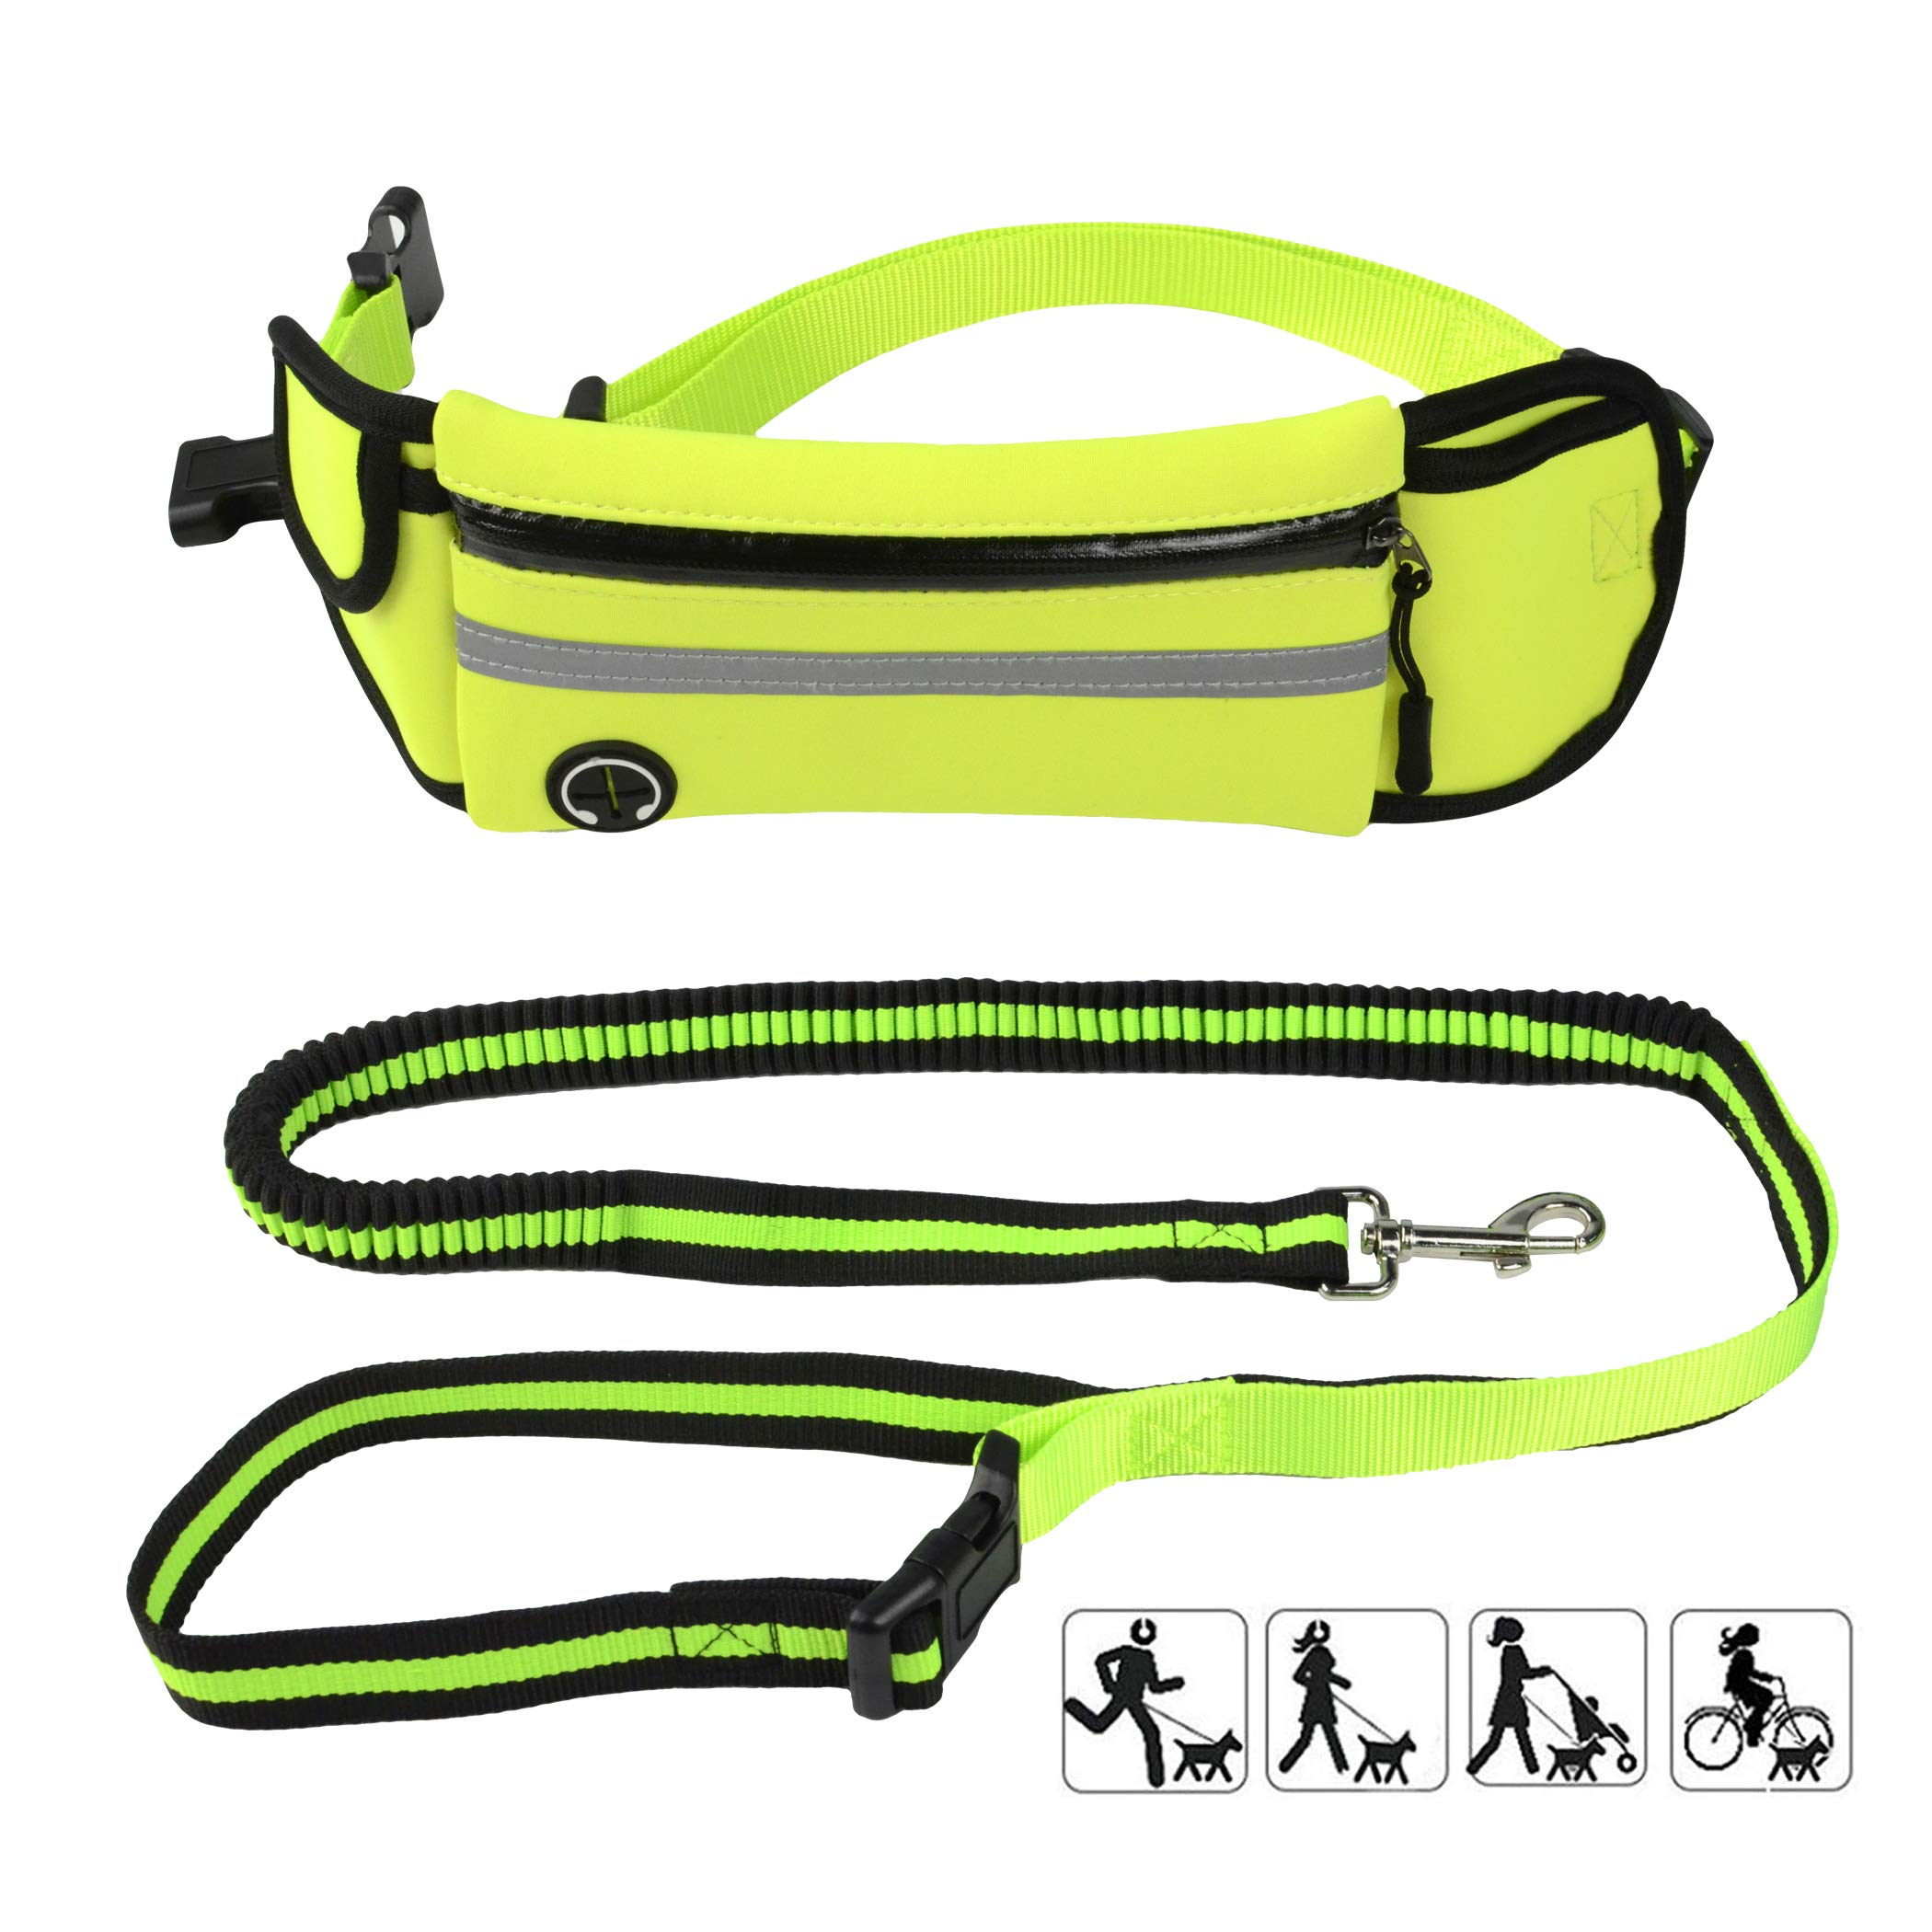 Baconlor Hands Free Dog Leash Belt for Walking Running Hiking- Reflective Adjustable Dog Leash Belt for Small Medium Large Up to 150 lbs Dogs,Durable Strong Safe Bungee Waist Leash For Easy Control